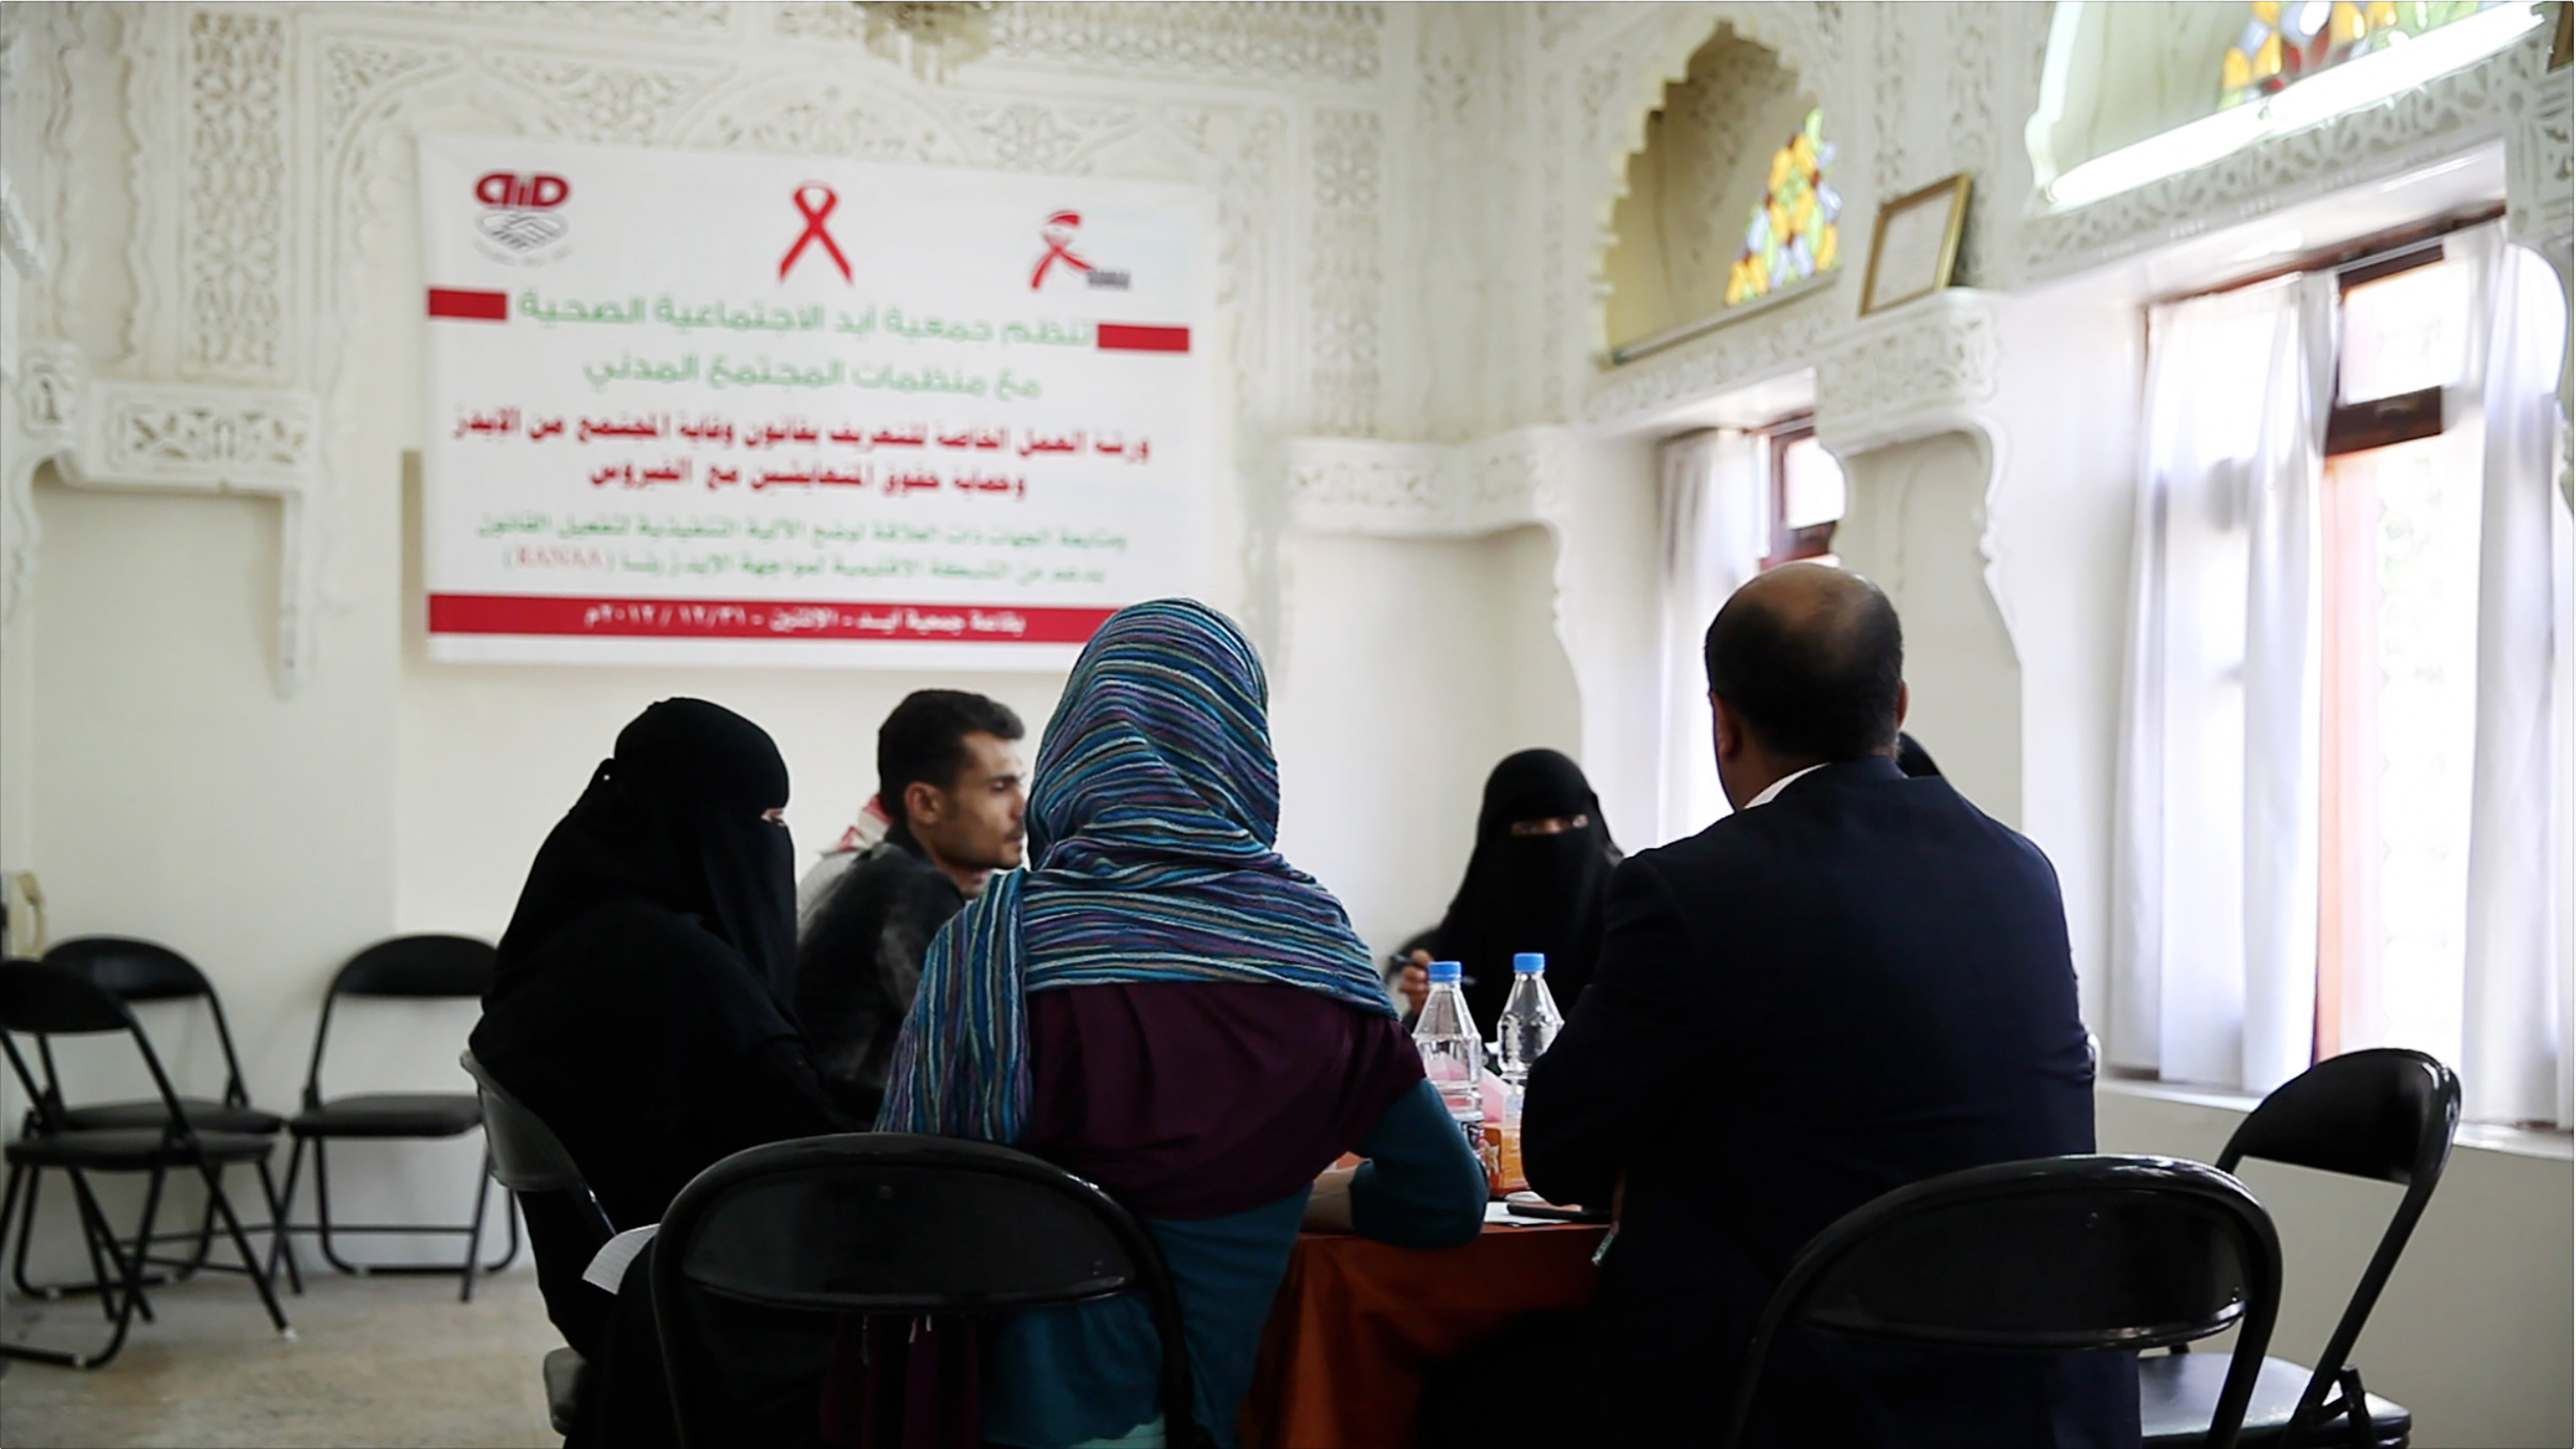 Meeting at the AID Association, one of the organisations working in Yemen to support people living with HIV.